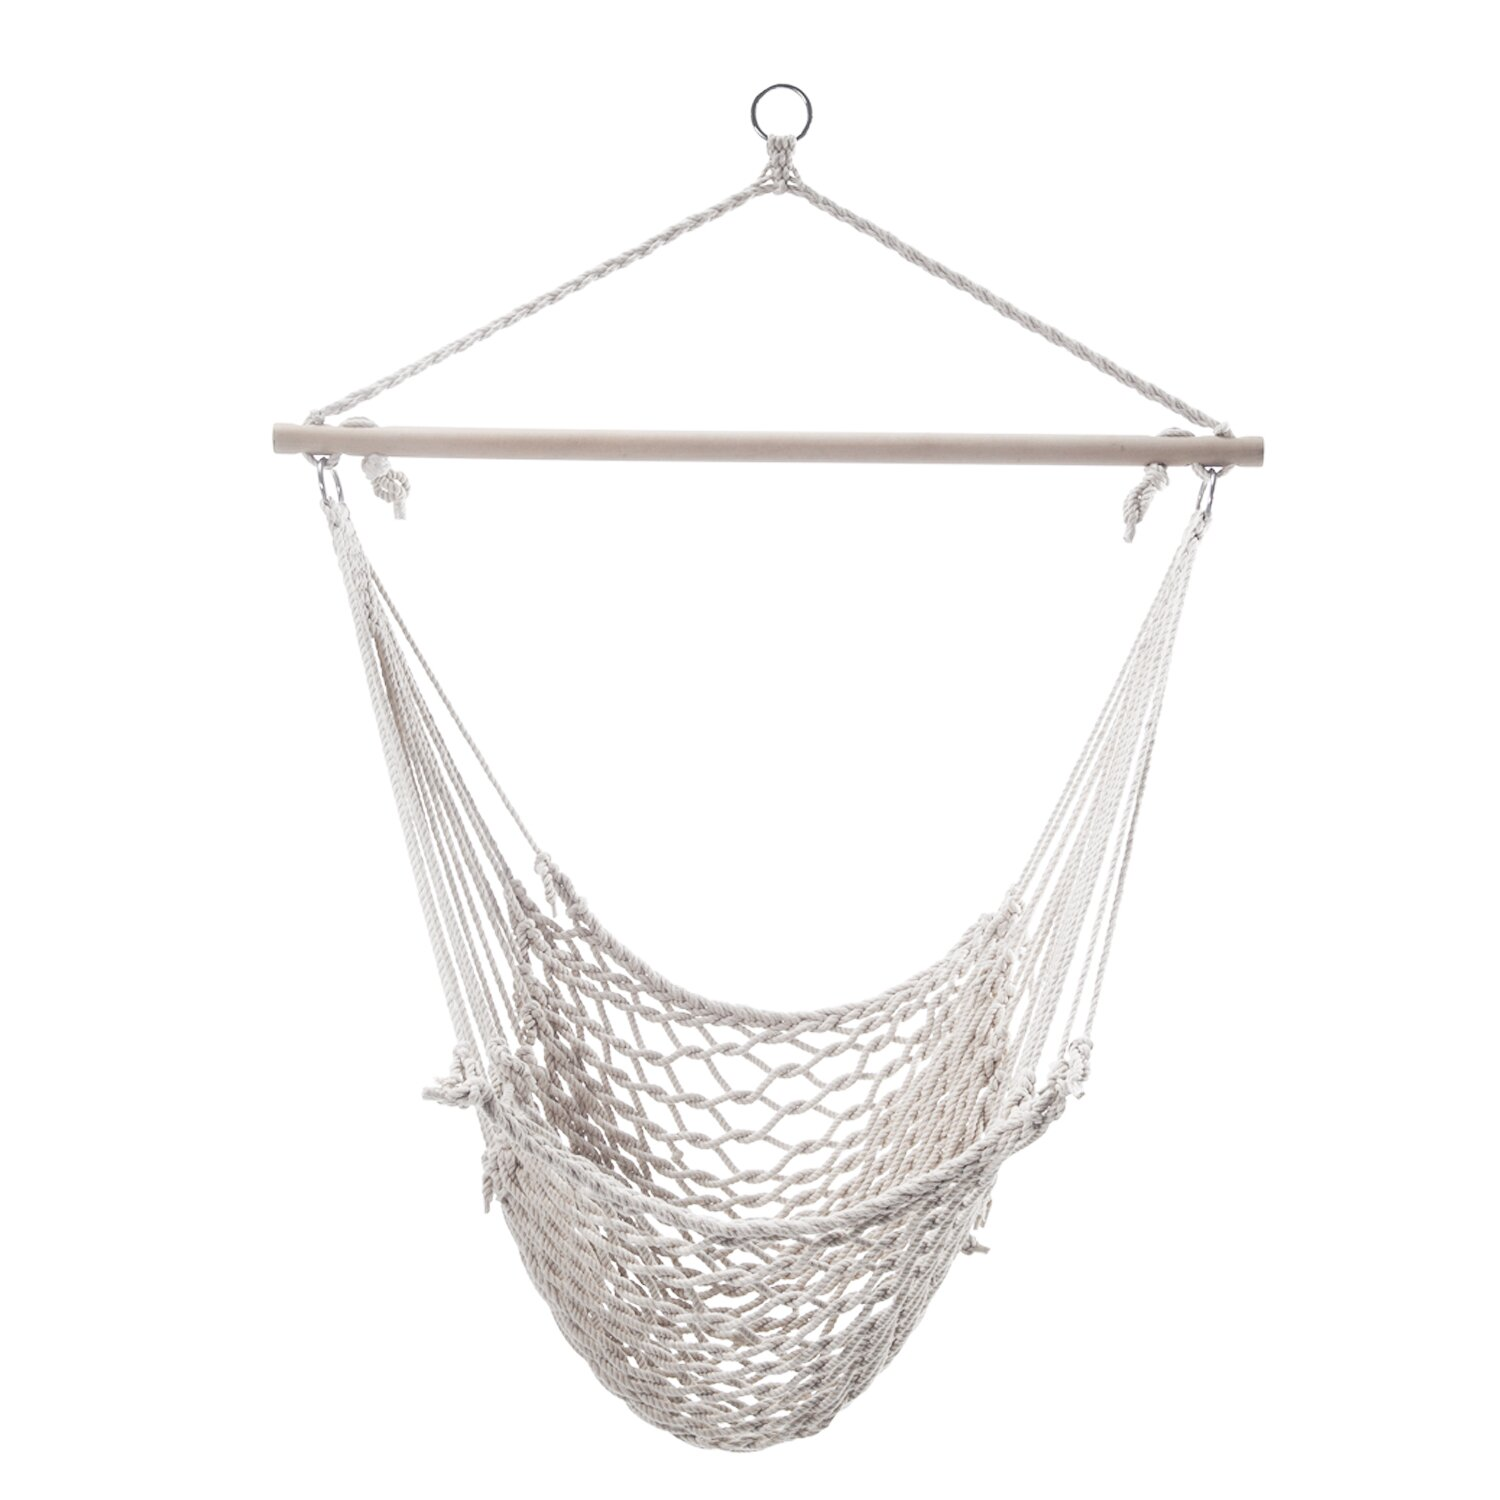 Trading Woven Rope Tree Hanging Suspended Indoor Outdoor Hammock Chair